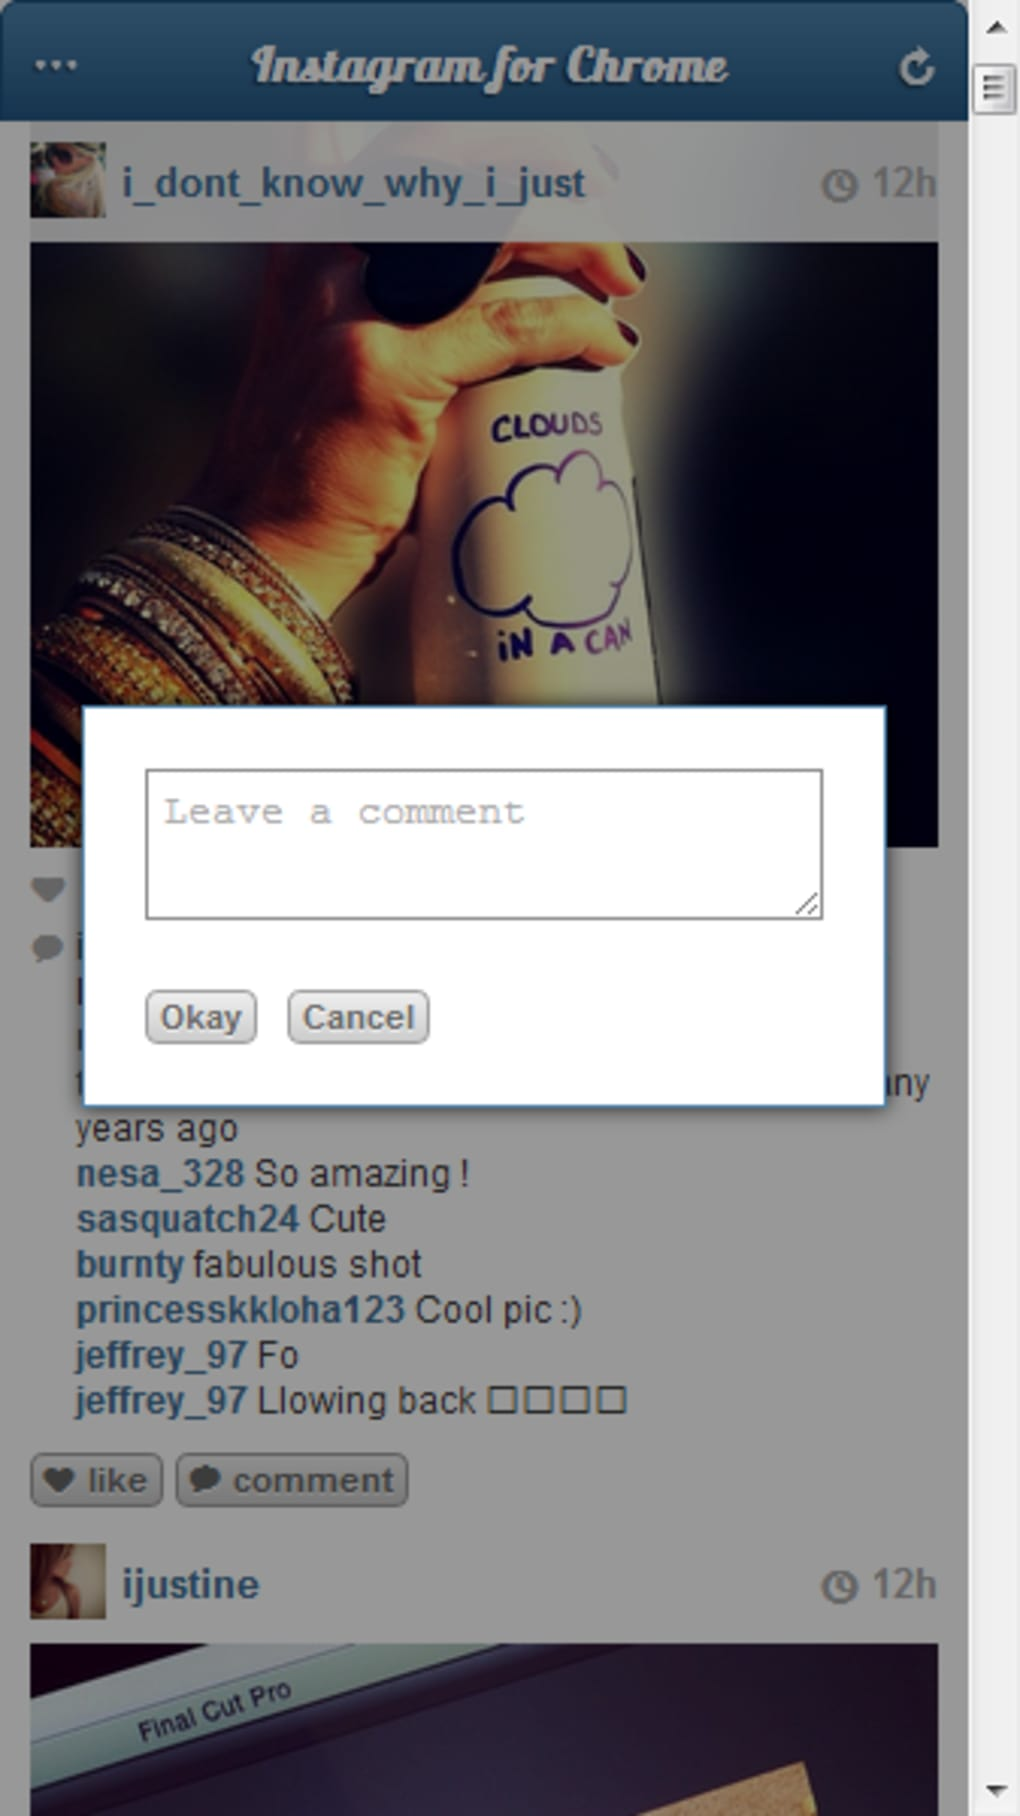 instagram app for windows 7 64bit